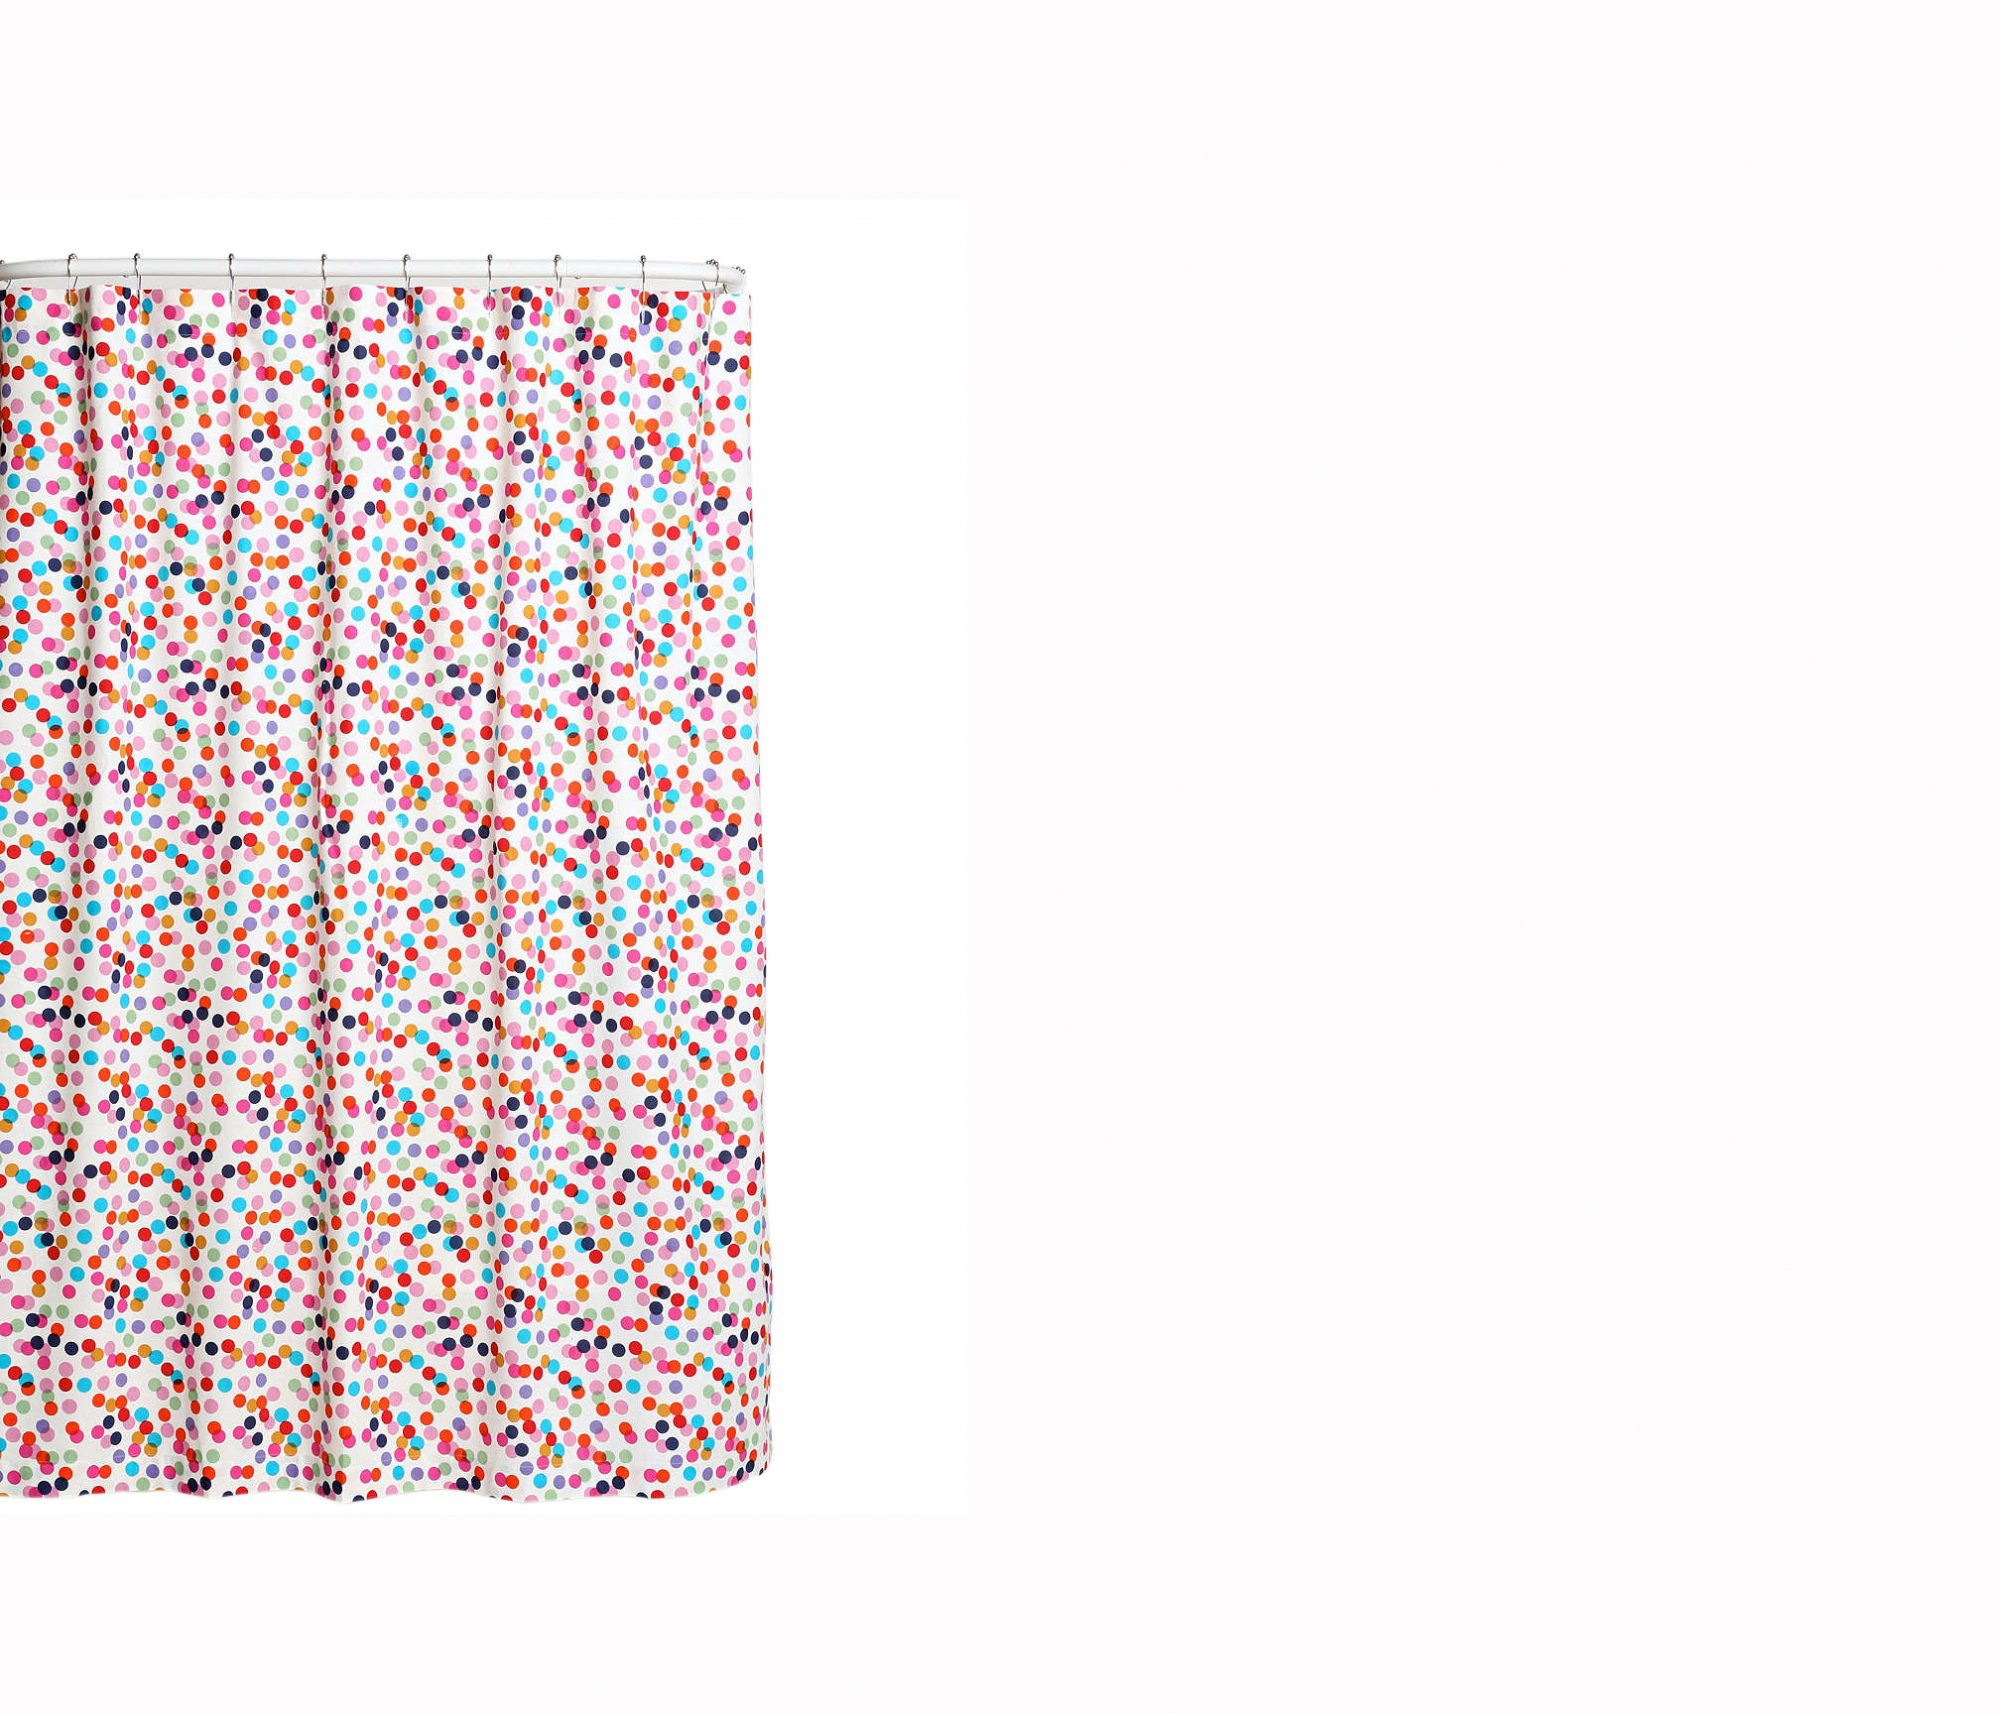 Stand-out Shower Curtains | Real Simple